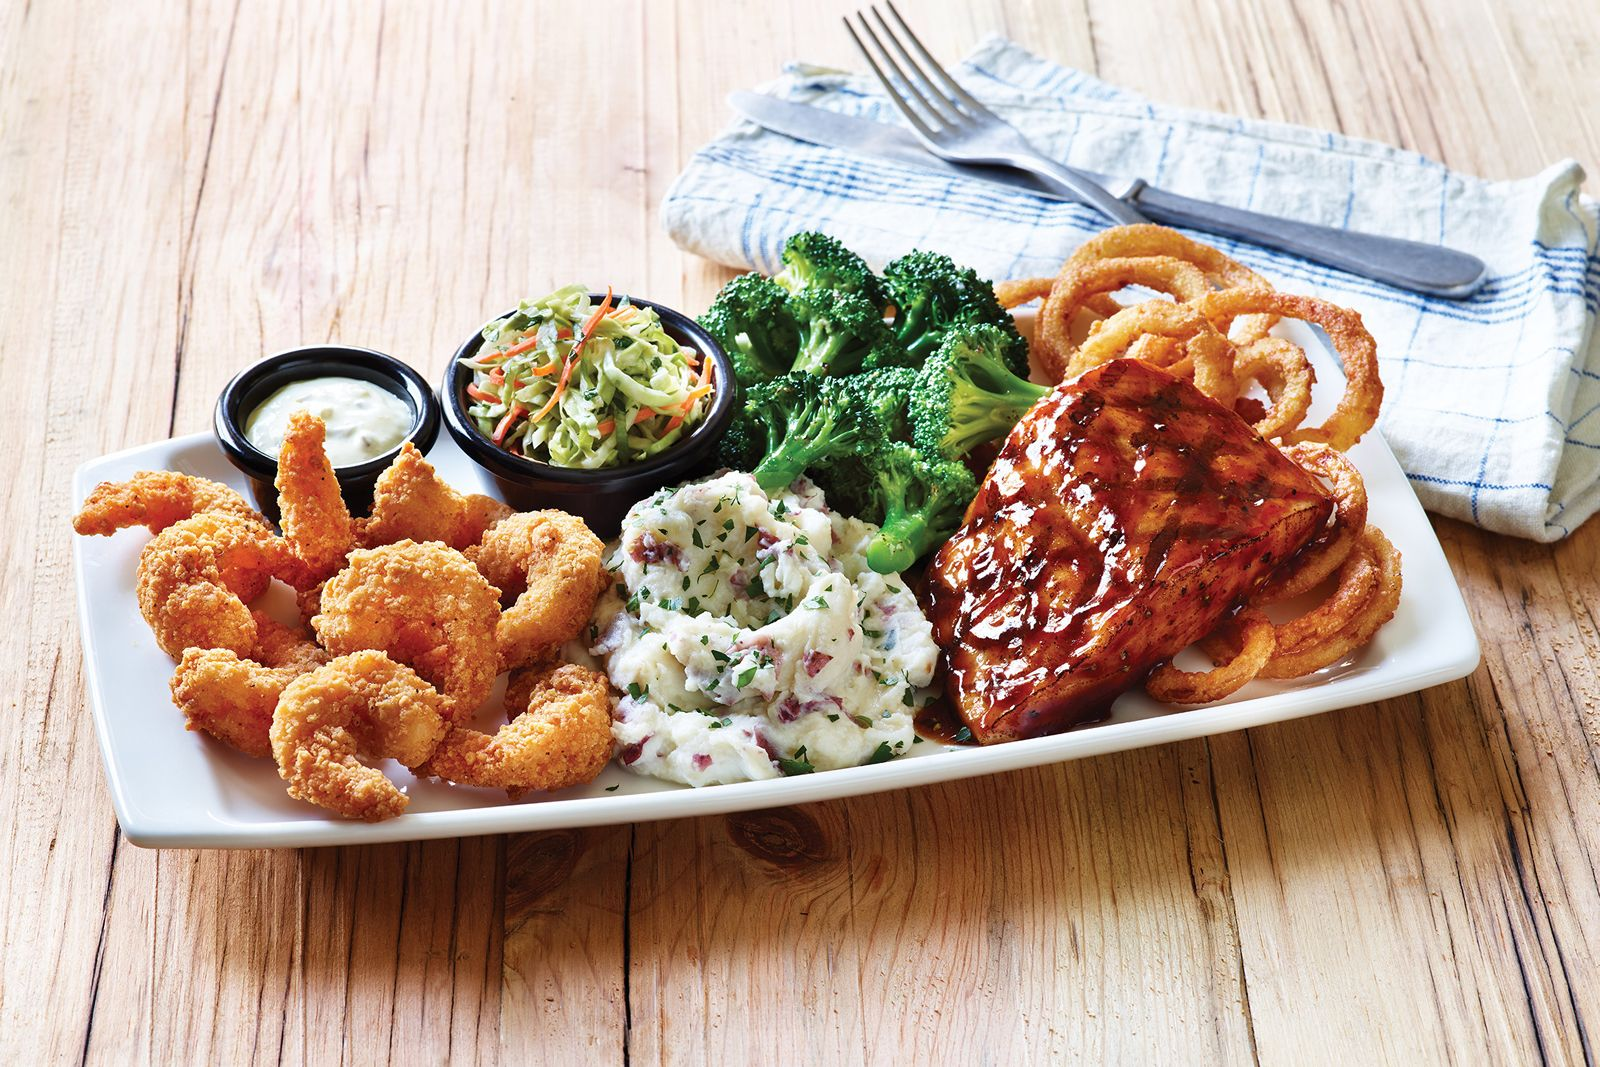 Applebee's Returns With Fan-Favorite Bigger, Bolder Grill Combos